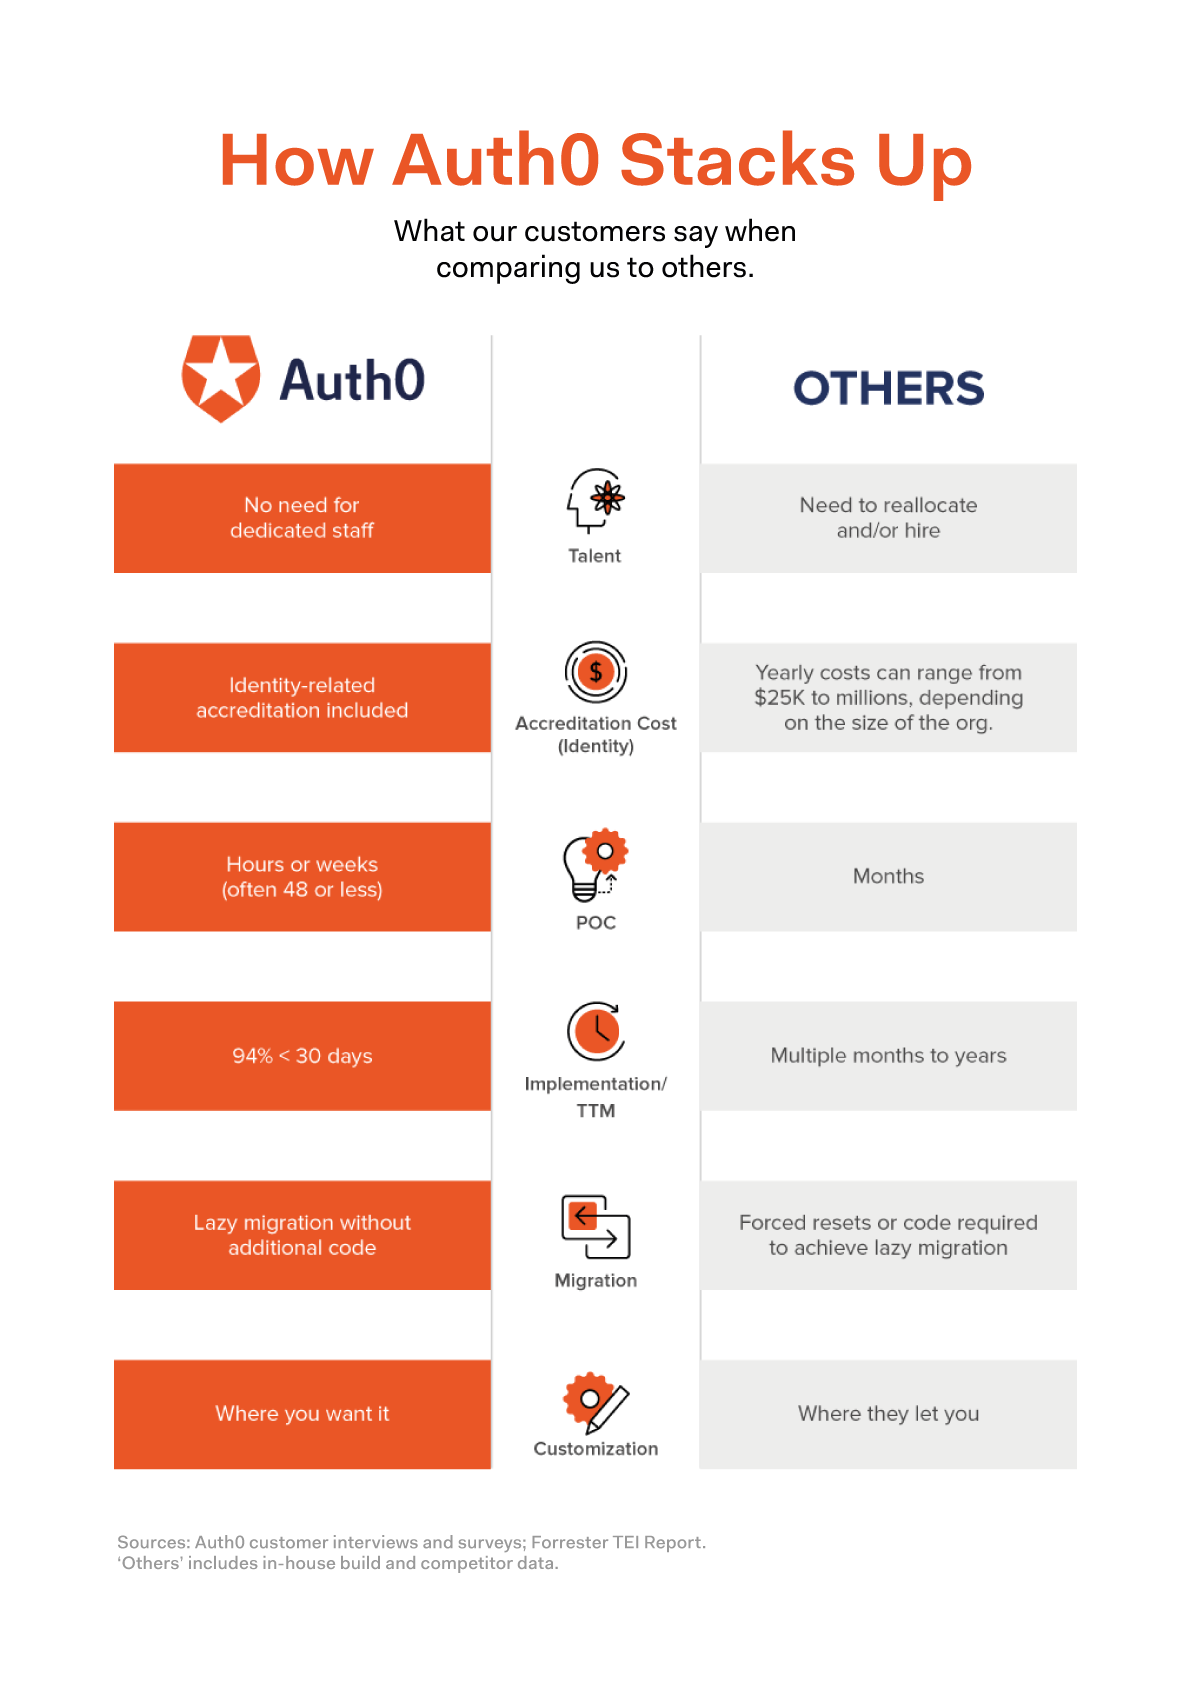 Infographic showing how Auth0 stacks up against competitors and in-house build